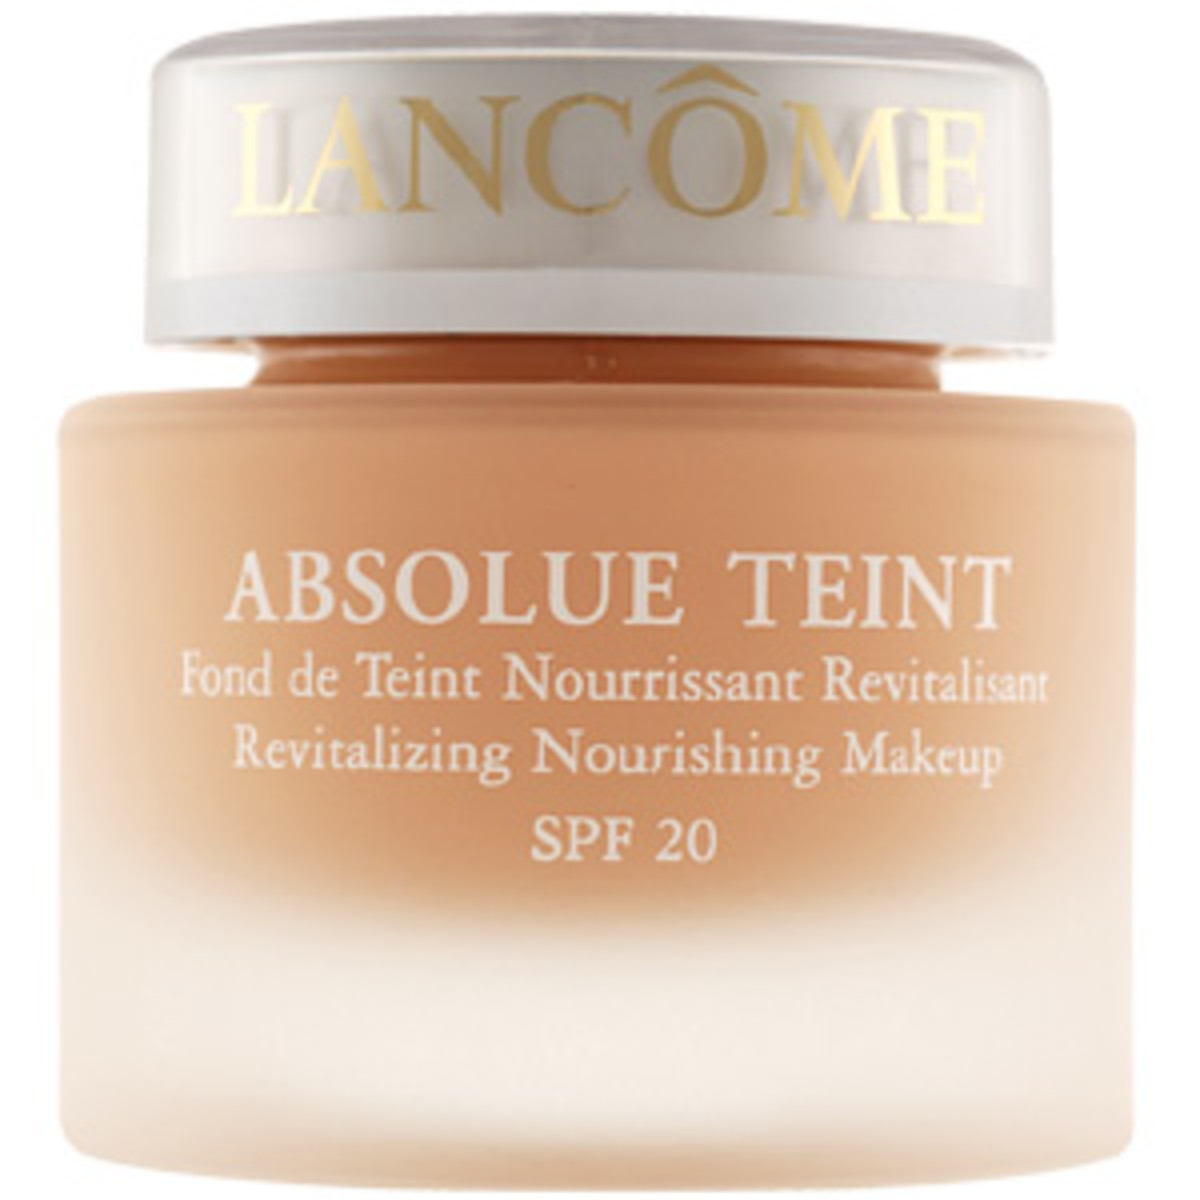 Lancome-Absolue-Teint